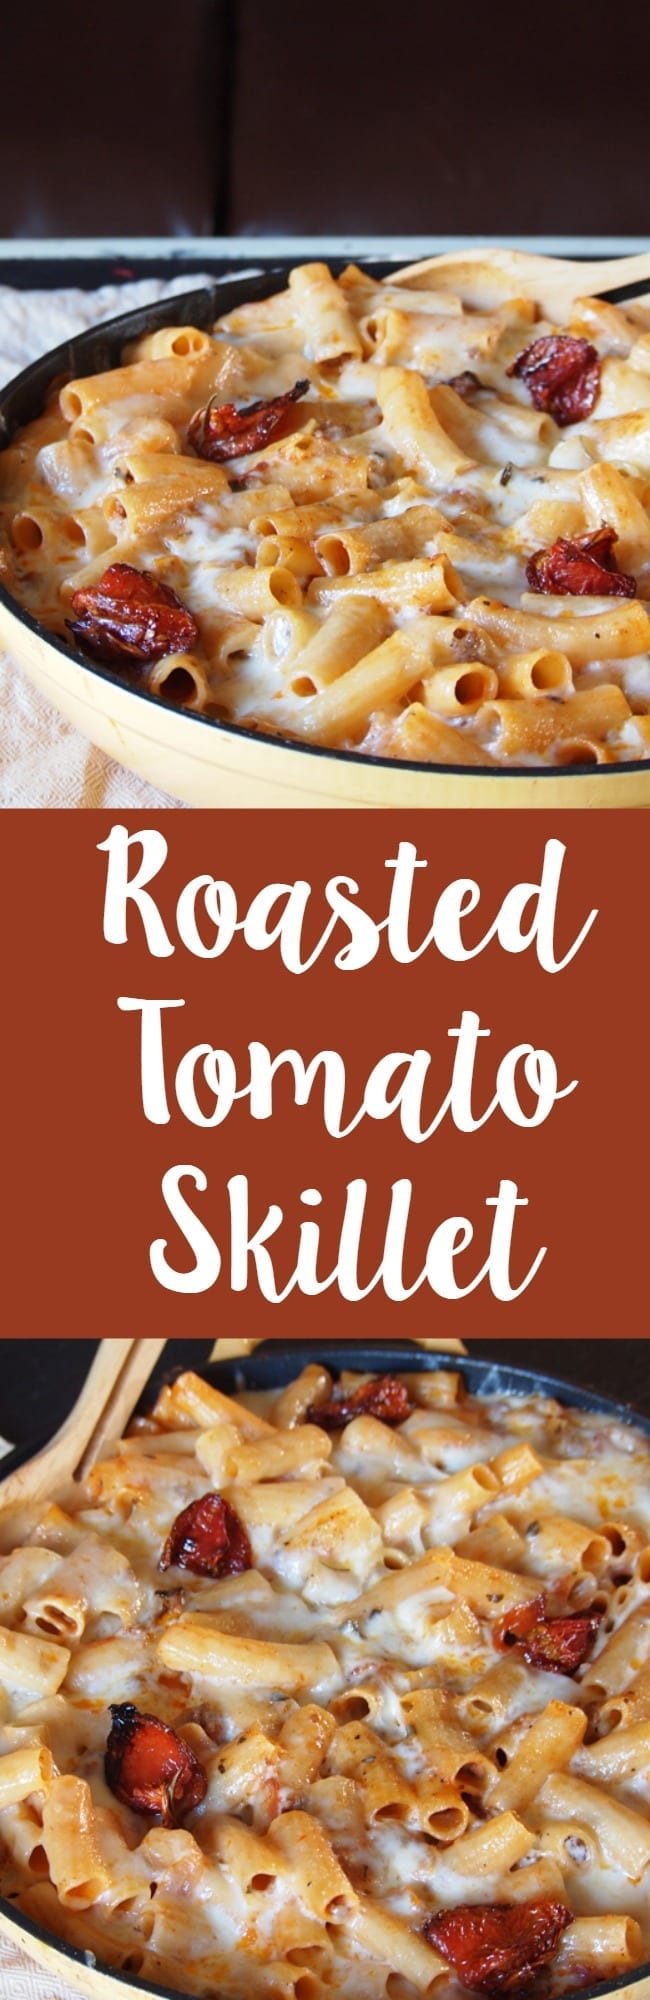 Roasted tomato skillet dinner recipe